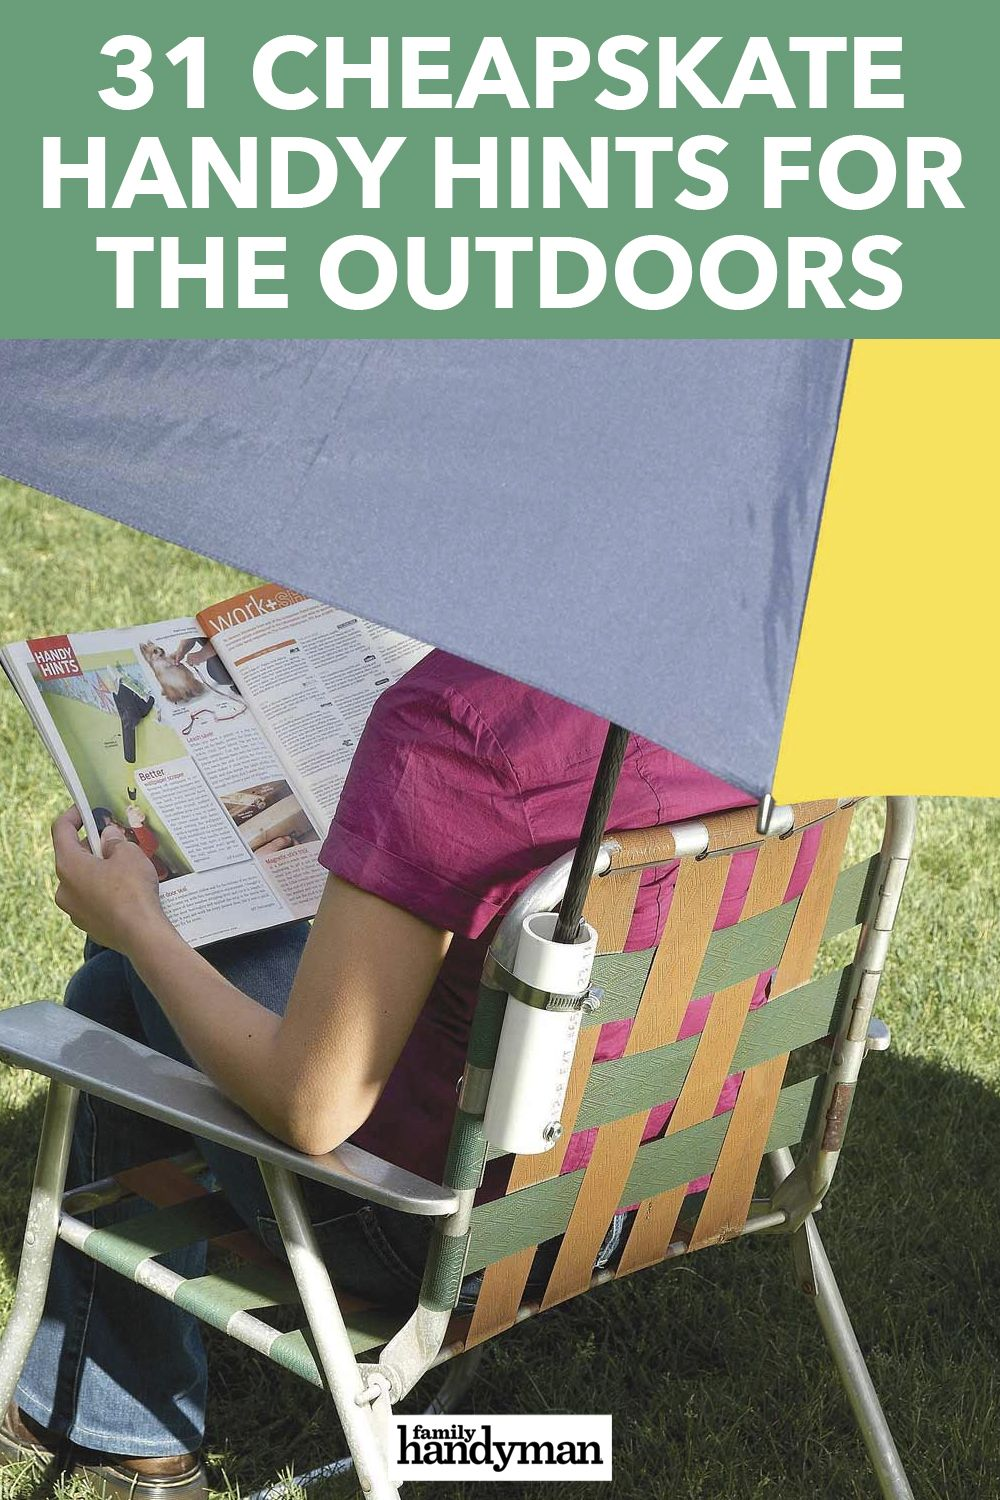 31 Cheapskate Handy Hints for the Outdoors